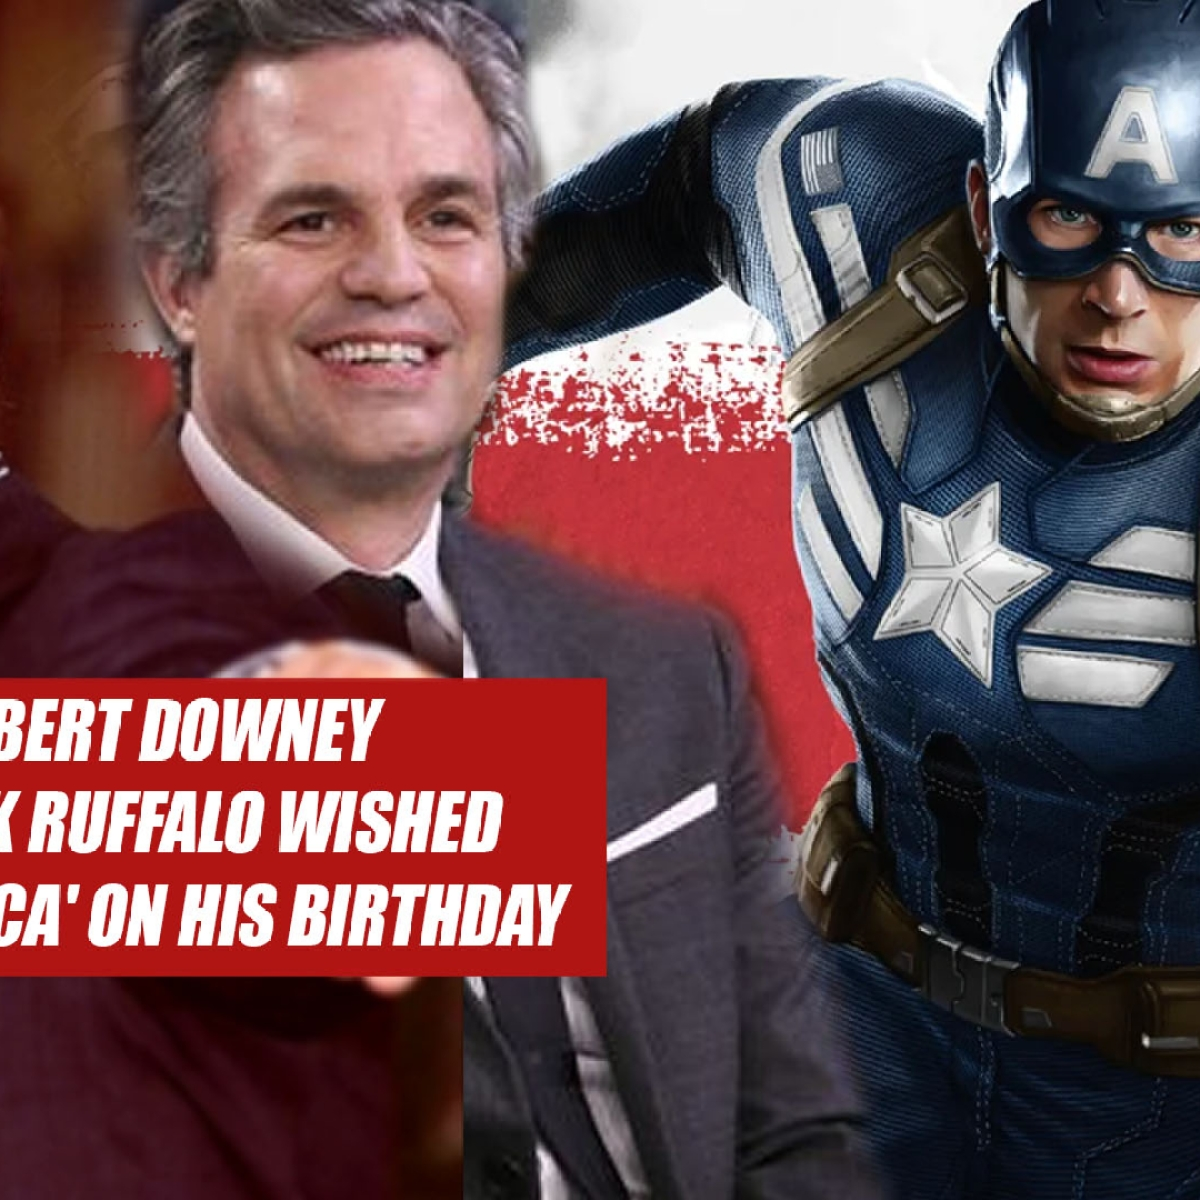 How Robert Downey Jr. And Mark Ruffalo Wished 'Captain America' On His Birthday